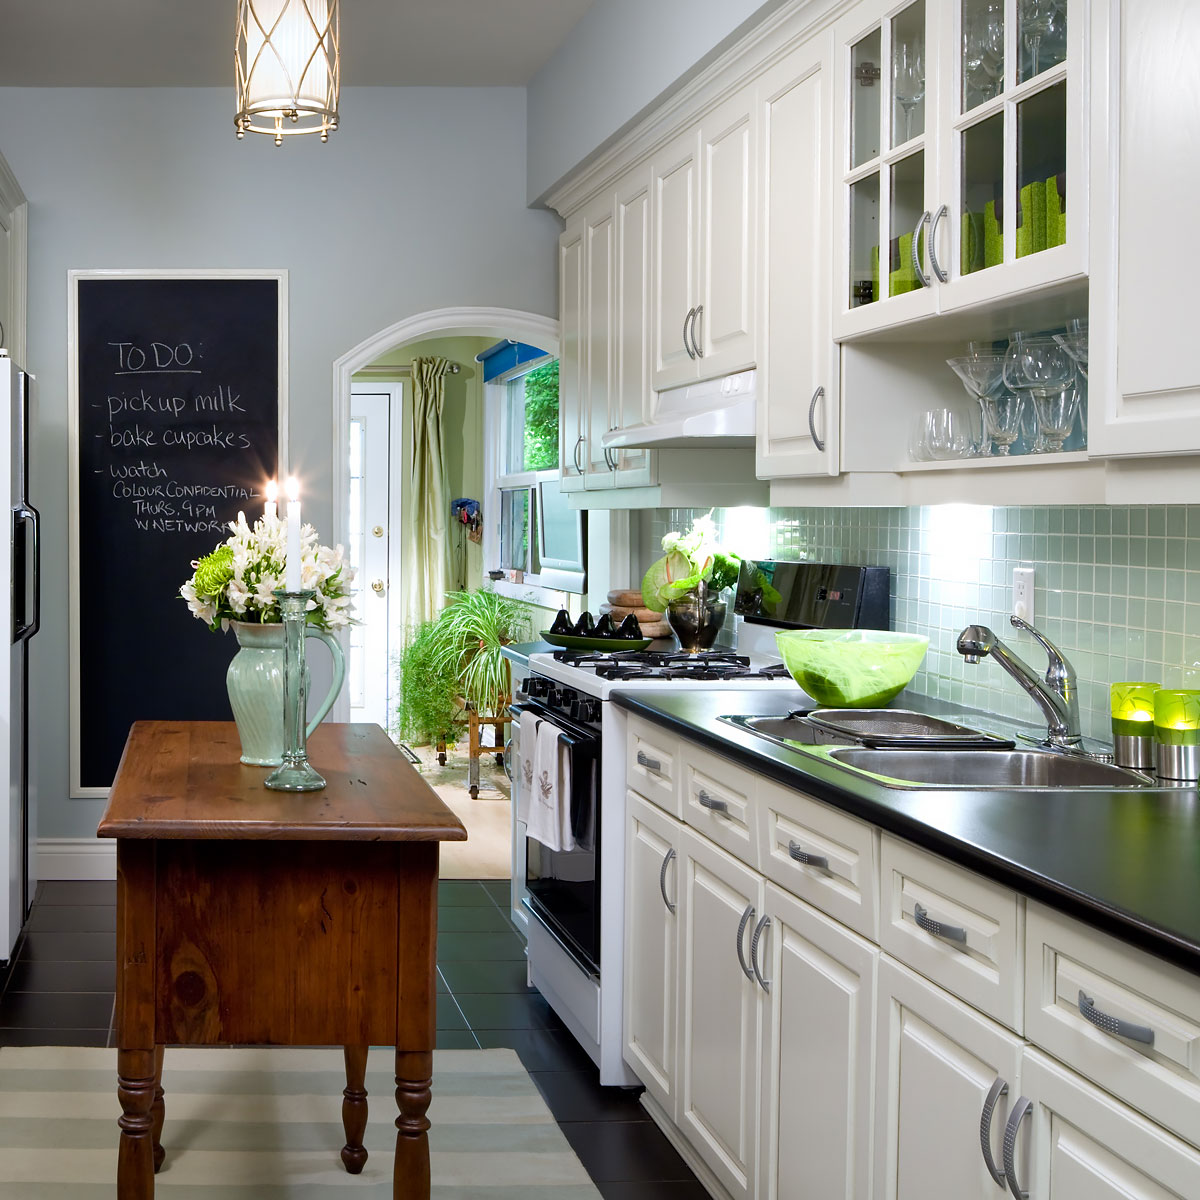 Ways To Update Kitchen Cabinets: How To Update Old Wood Kitchen Cabinets